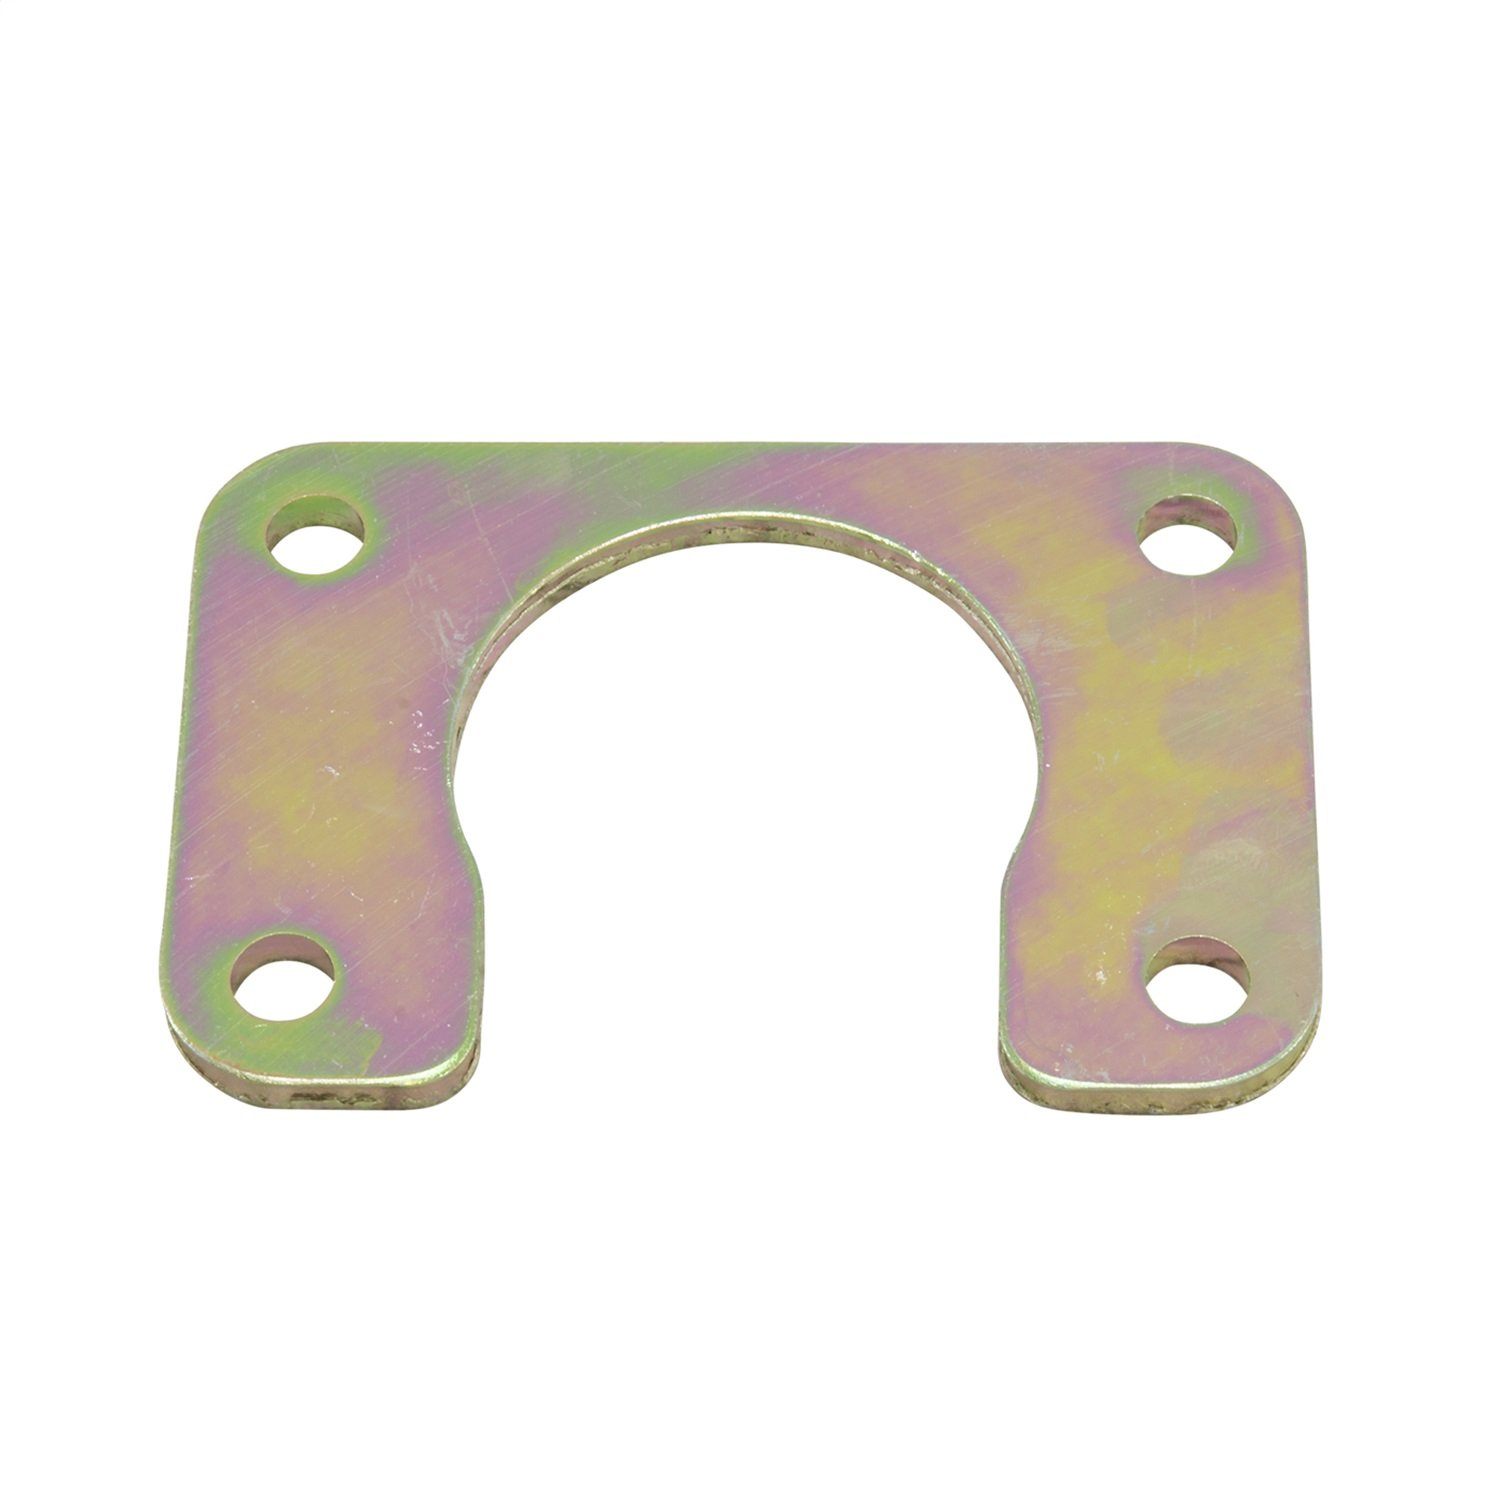 Yukon (YSPRET-006) Axle Bearing Retainer for Ford 9'' Differential